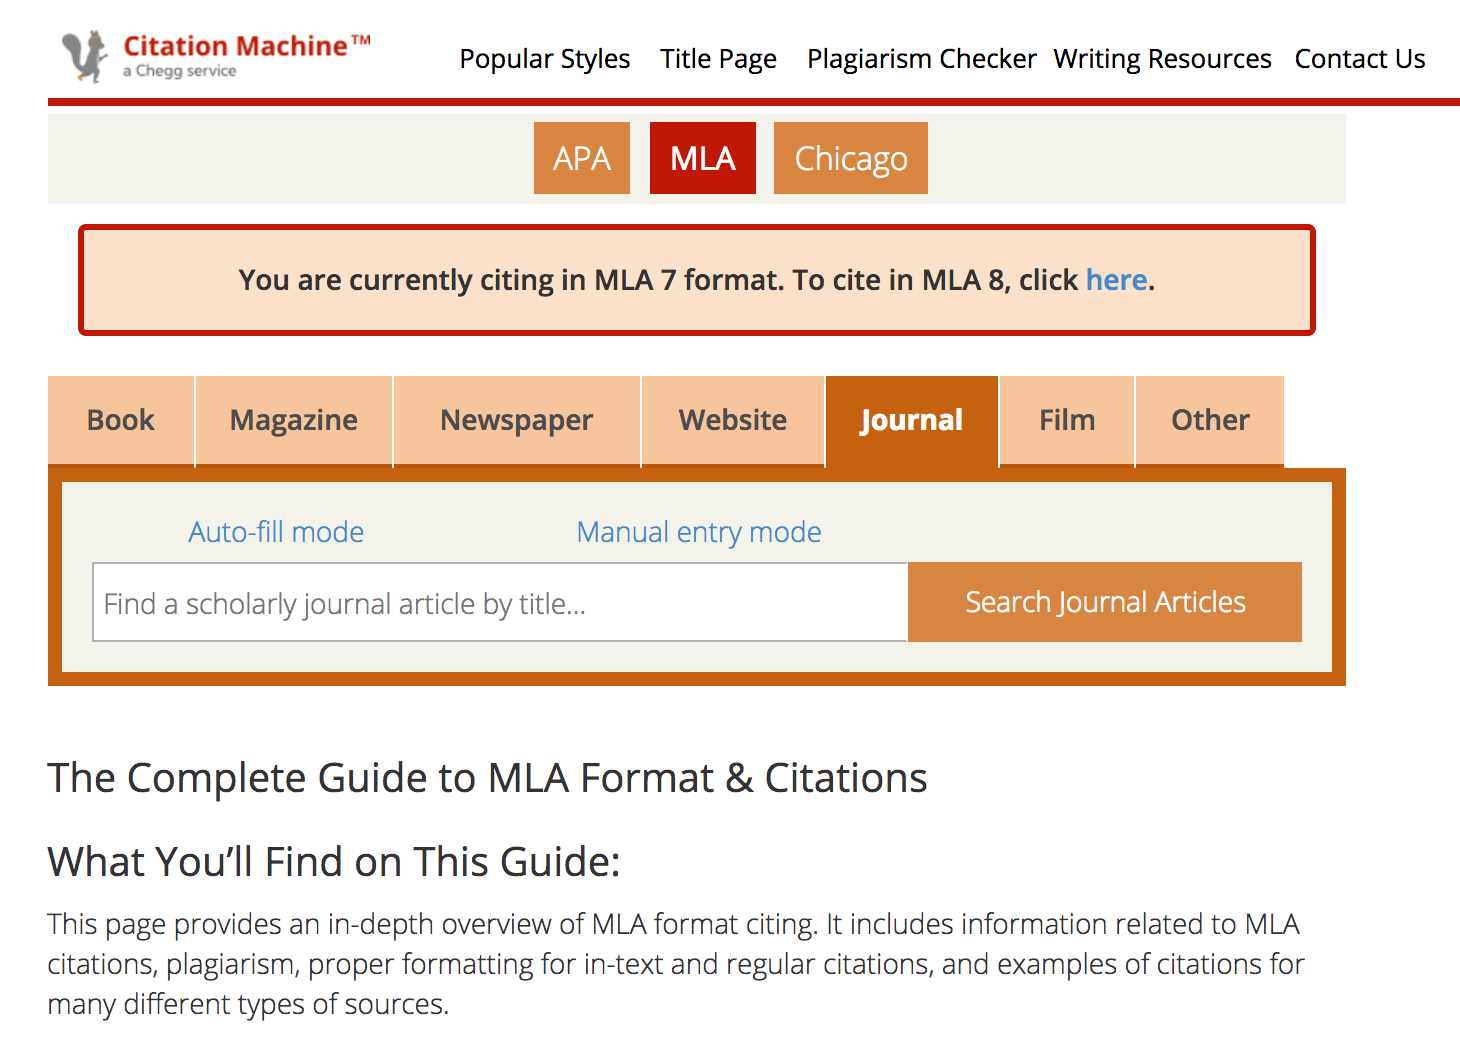 010 Cite Research Paper Generator Top Harvard Referencing How To My Sources In Mla Format Full